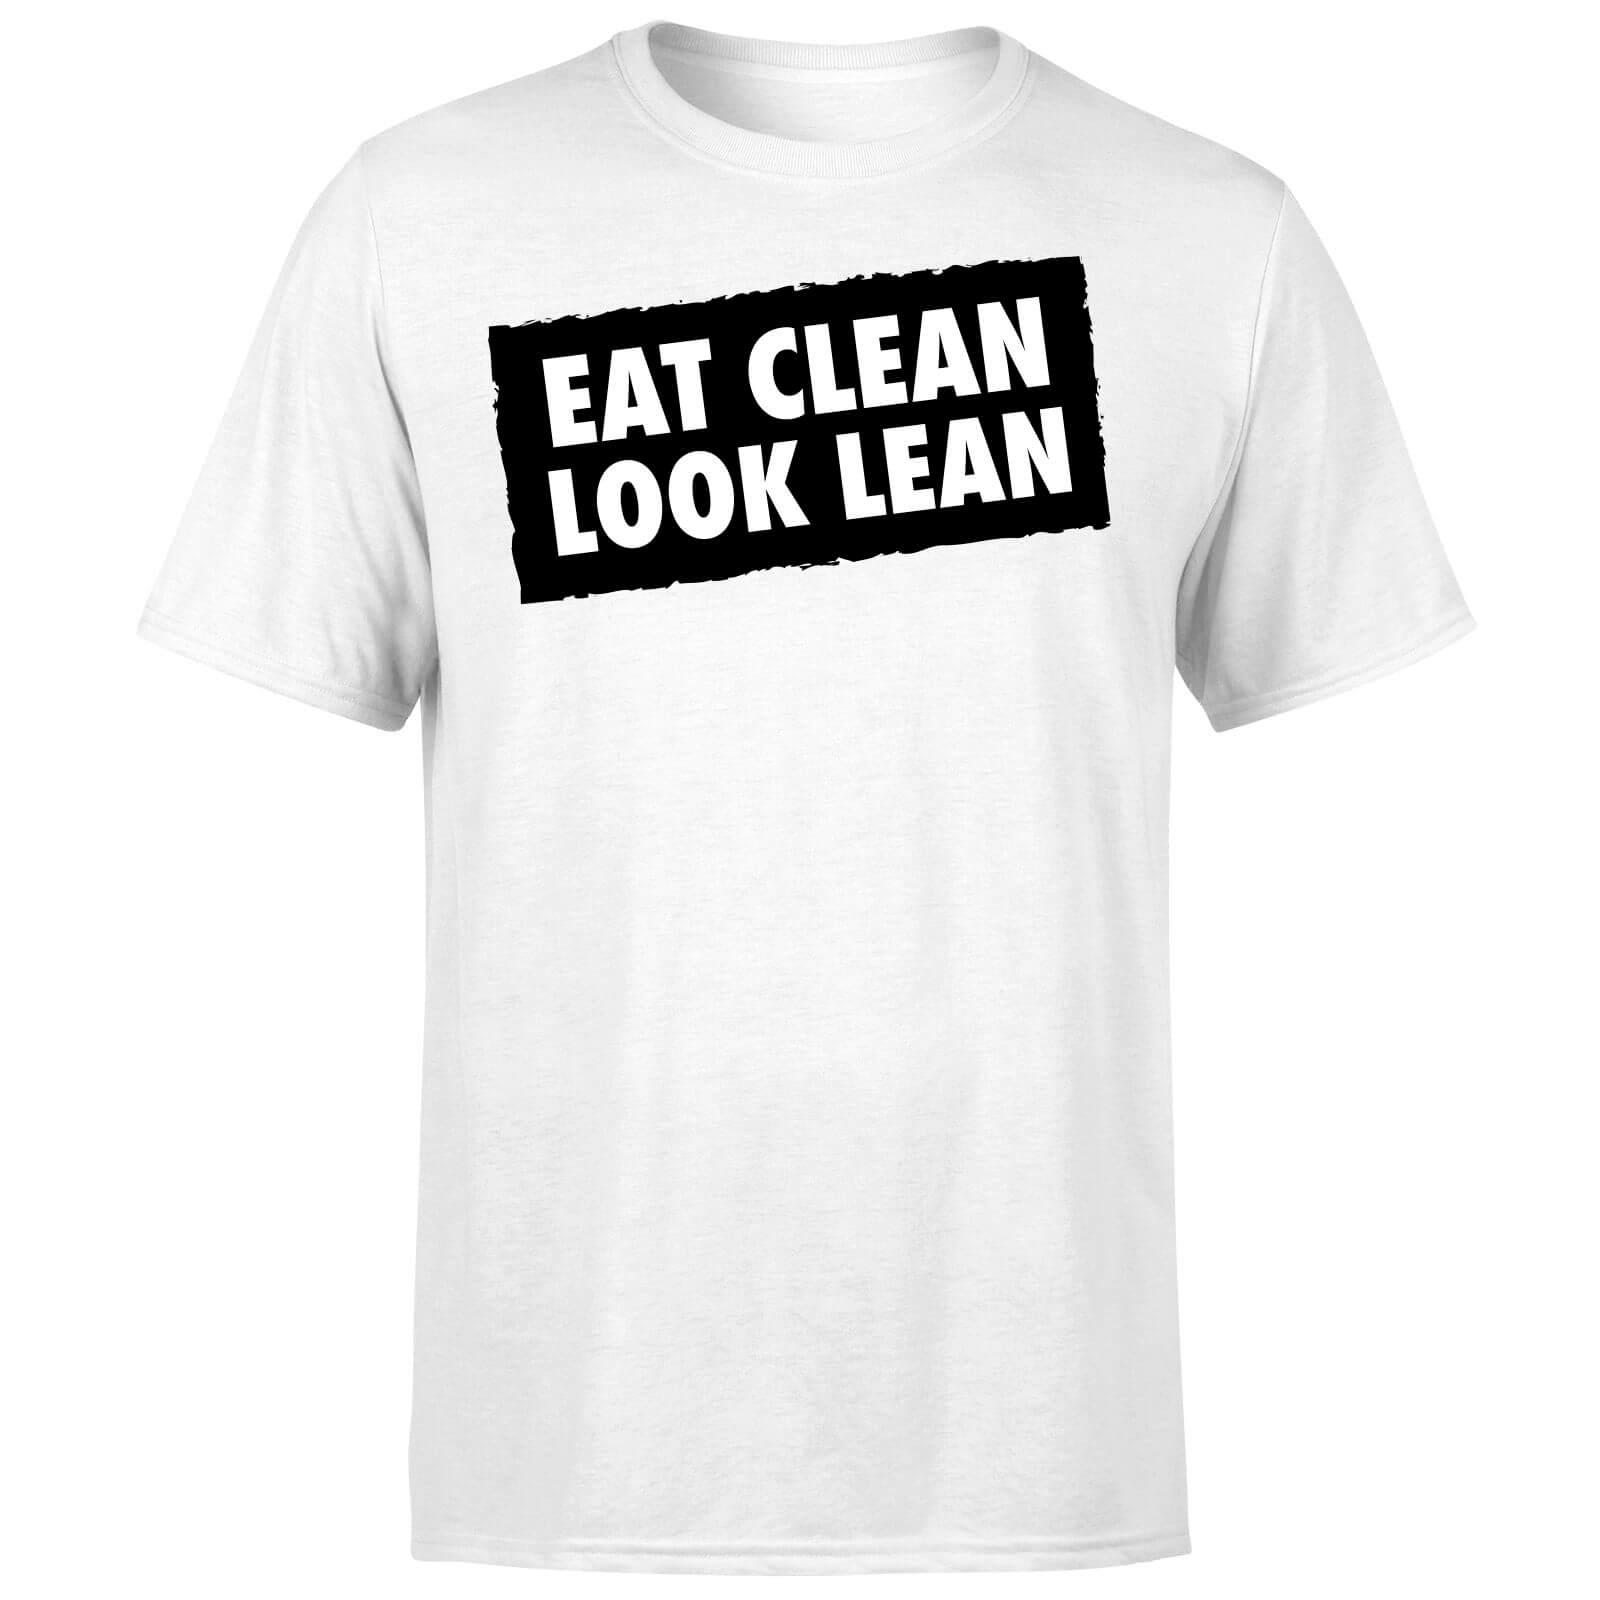 Eat Clean Look Lean T-Shirt - White